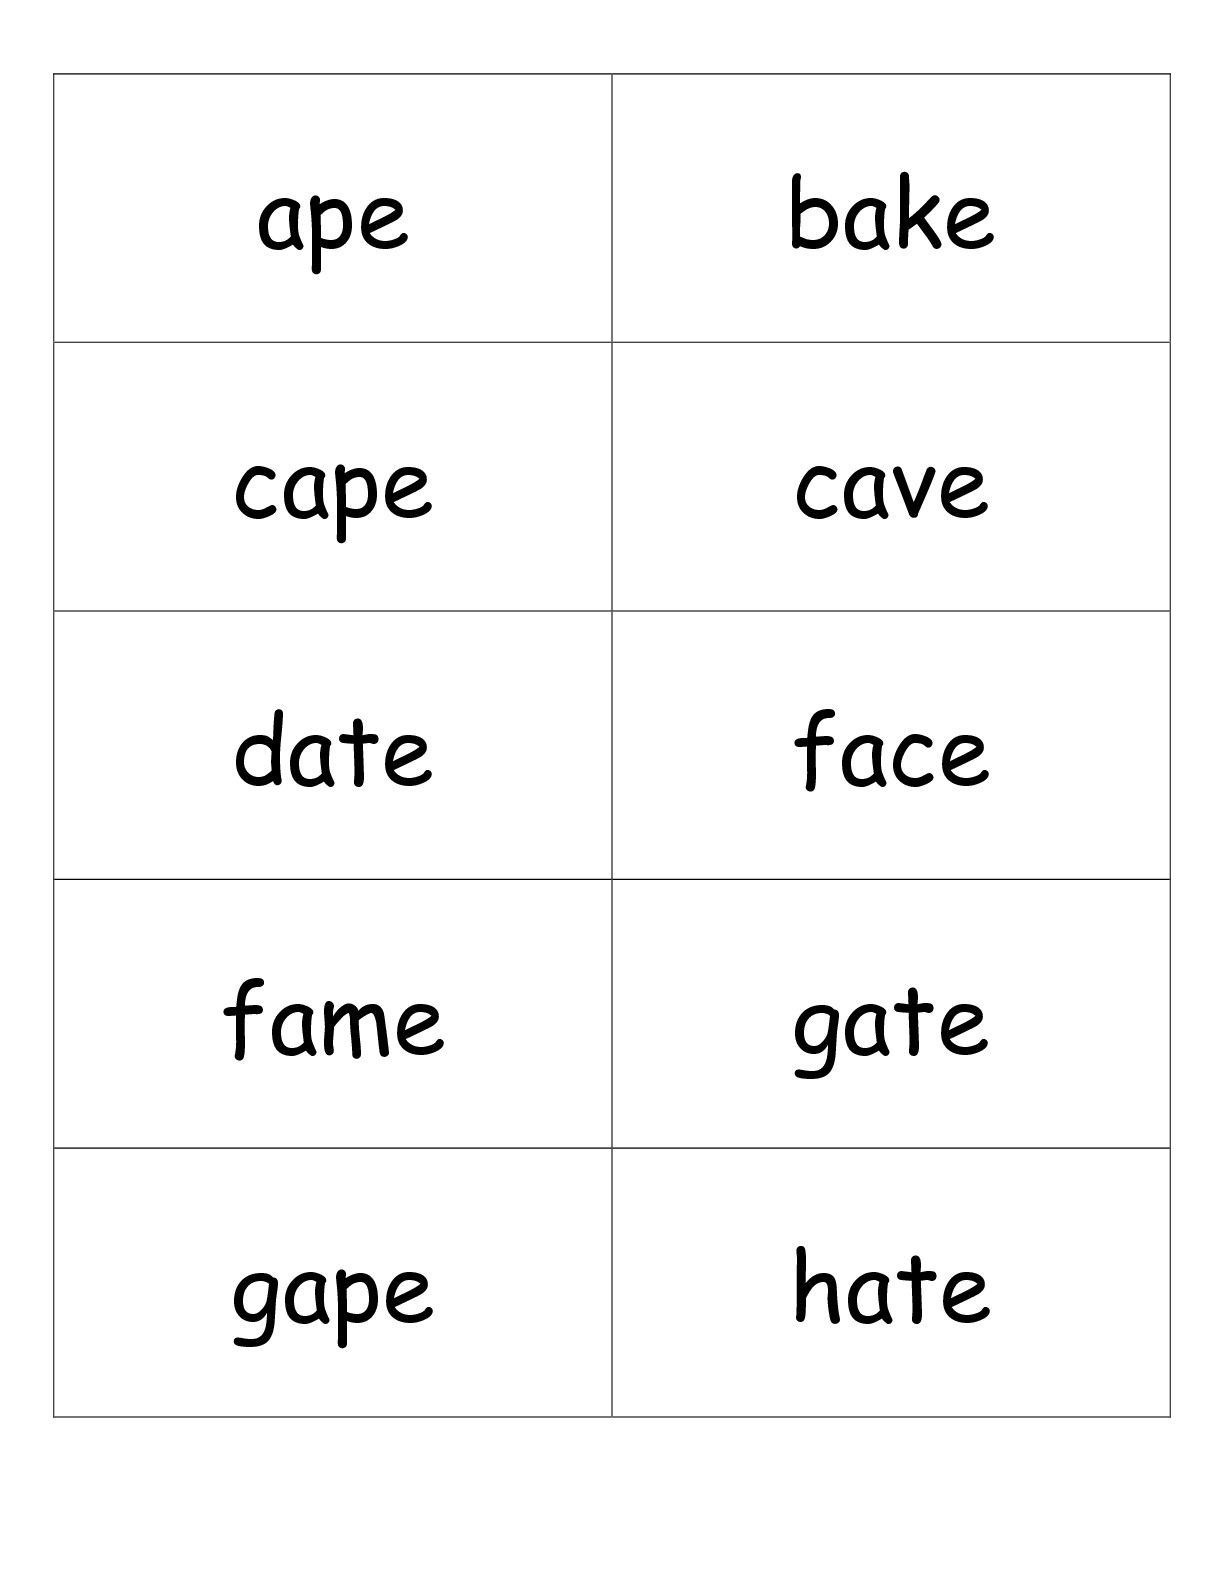 Second Grade Phonics Worksheets And Flashcards - Free Printable Phonics Worksheets For Second Grade